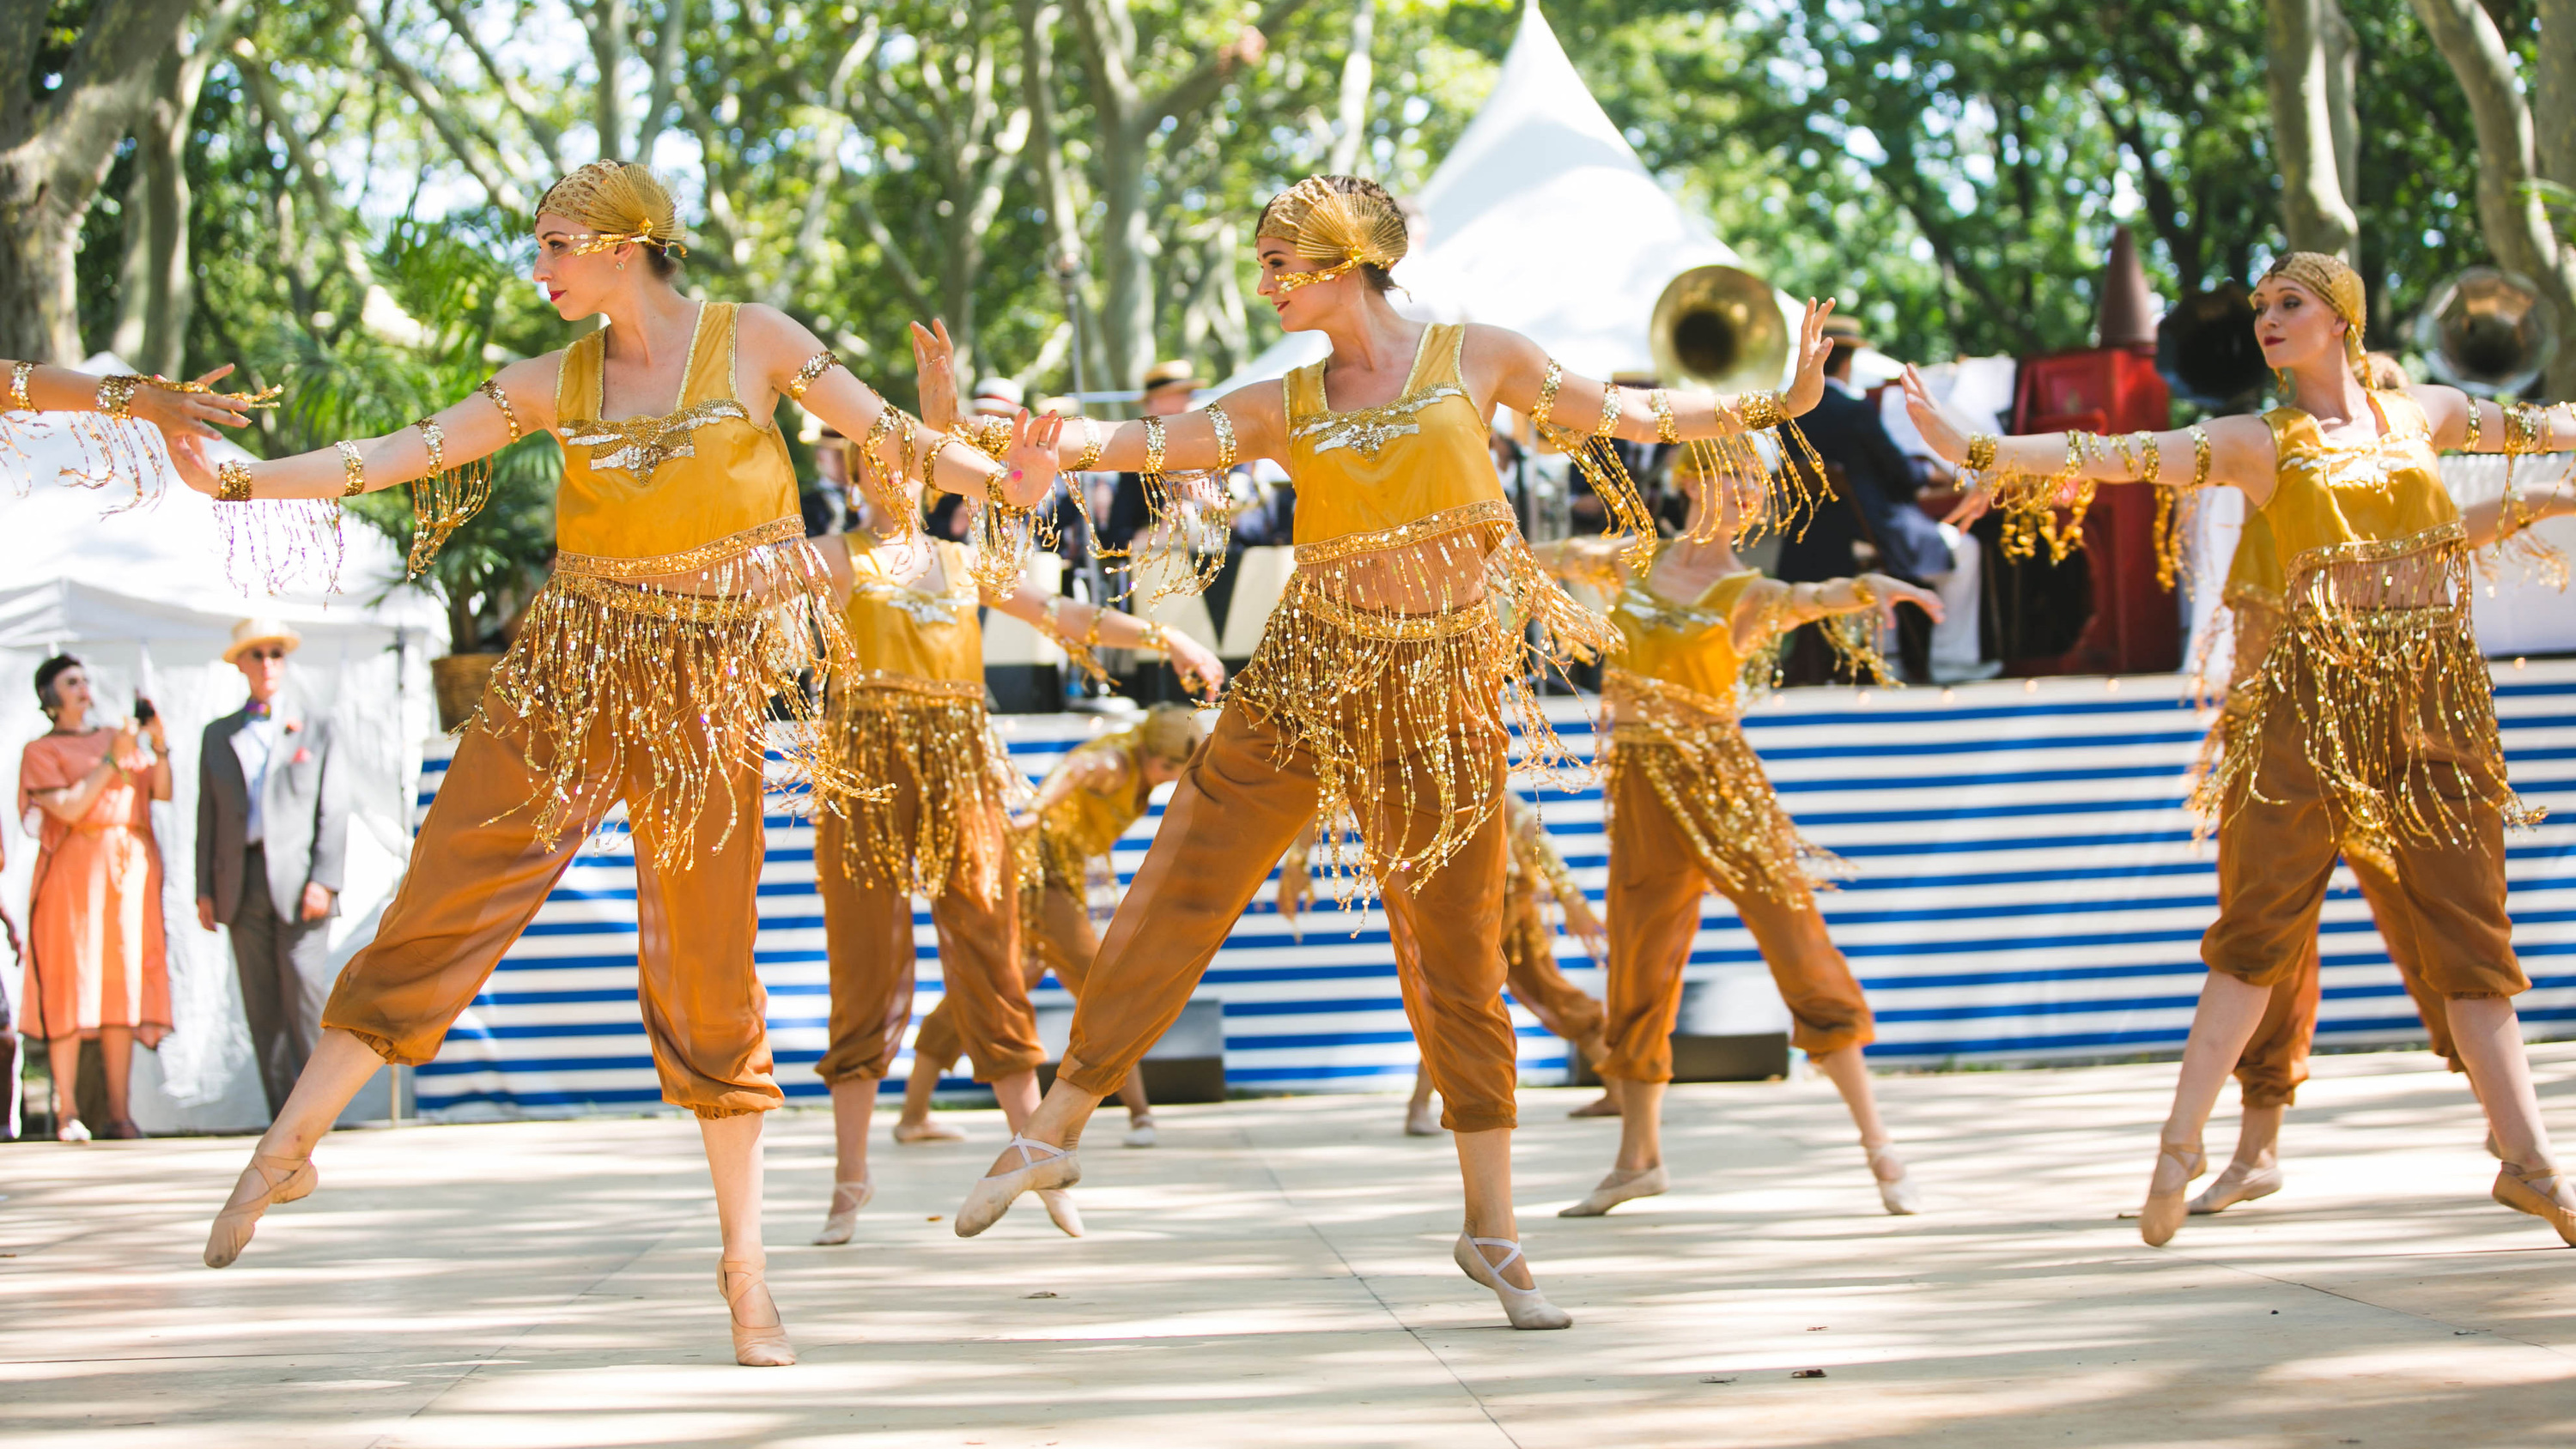 Everything you need to know about the Jazz Age Lawn Party this weekend